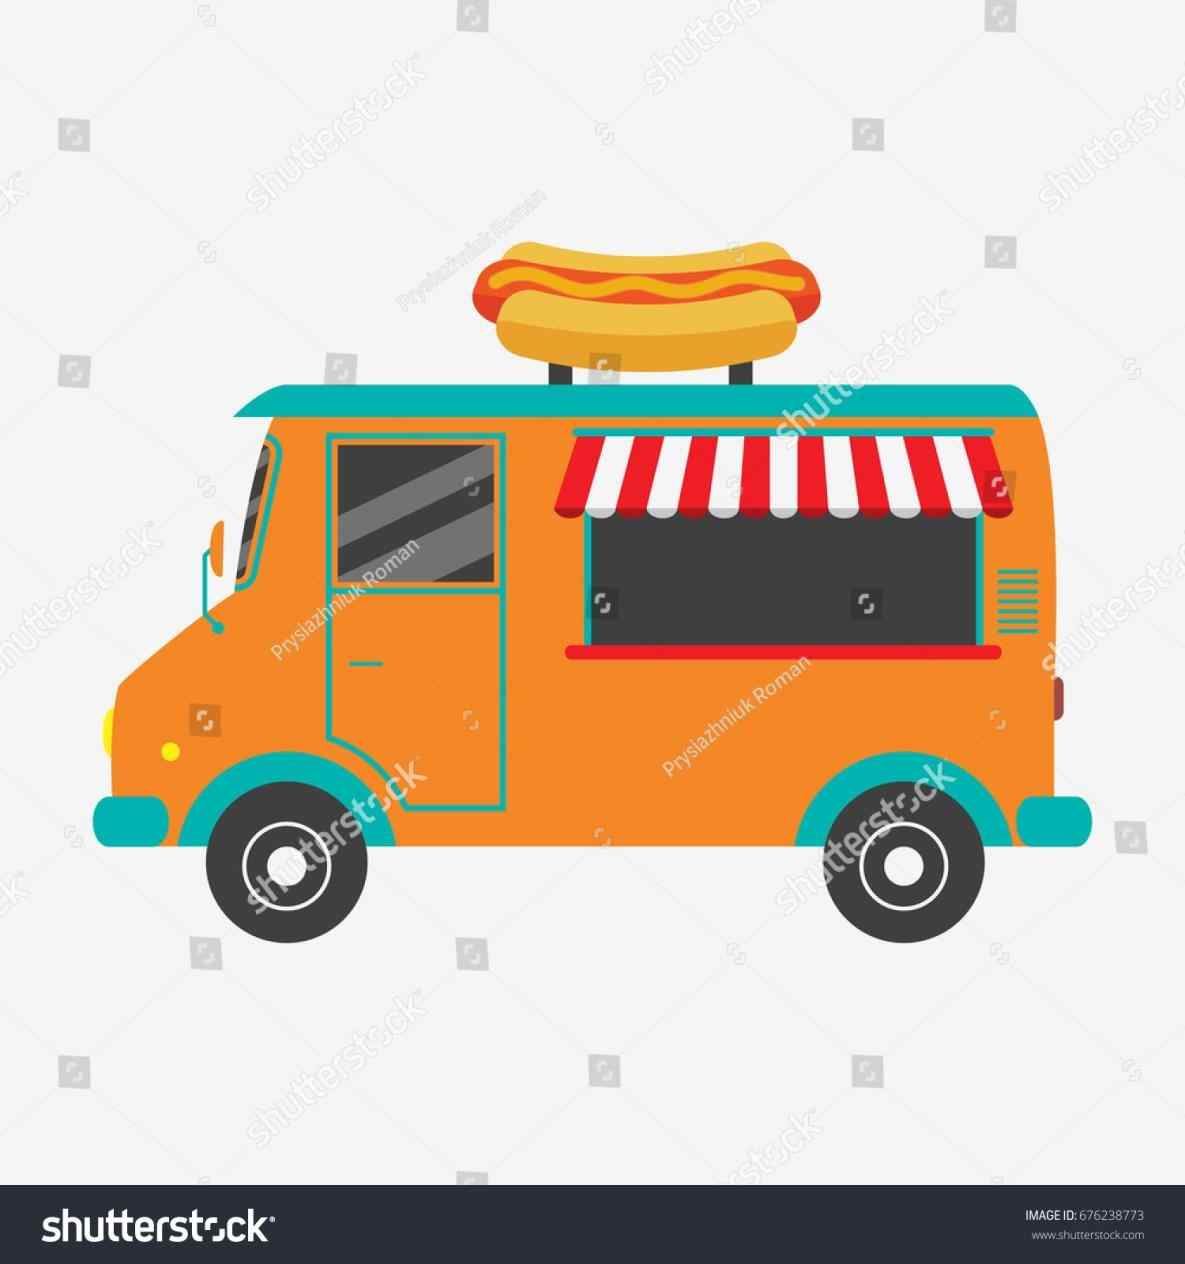 1185x1264 The Images Collection Of Fast Food Stock Vector Shutterstock Van